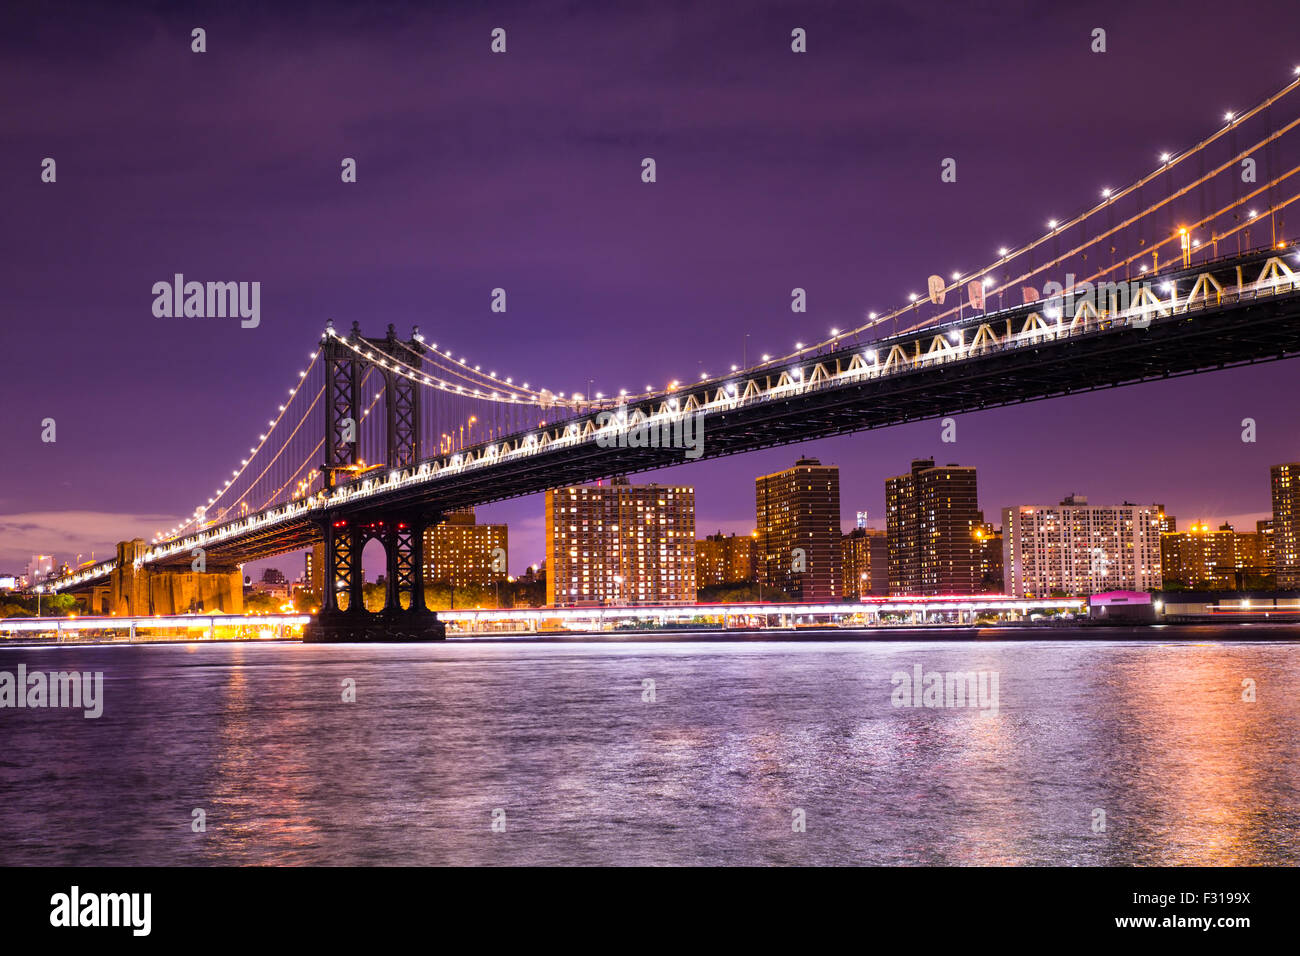 Nachtansicht der Manhattan Bridge in New York City Stockbild